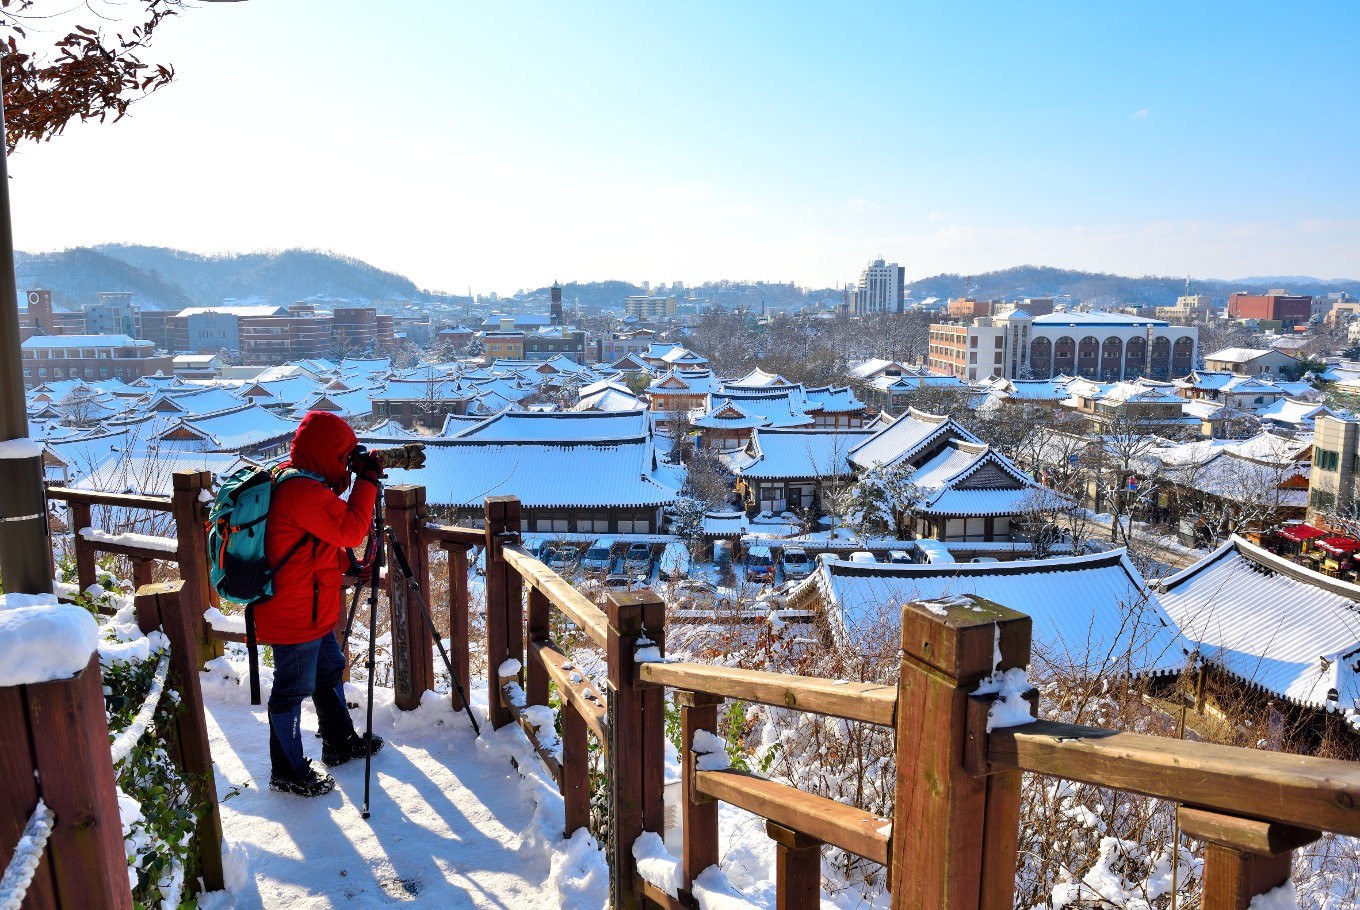 South Korea eyes solo travelers with '#akudankorea'